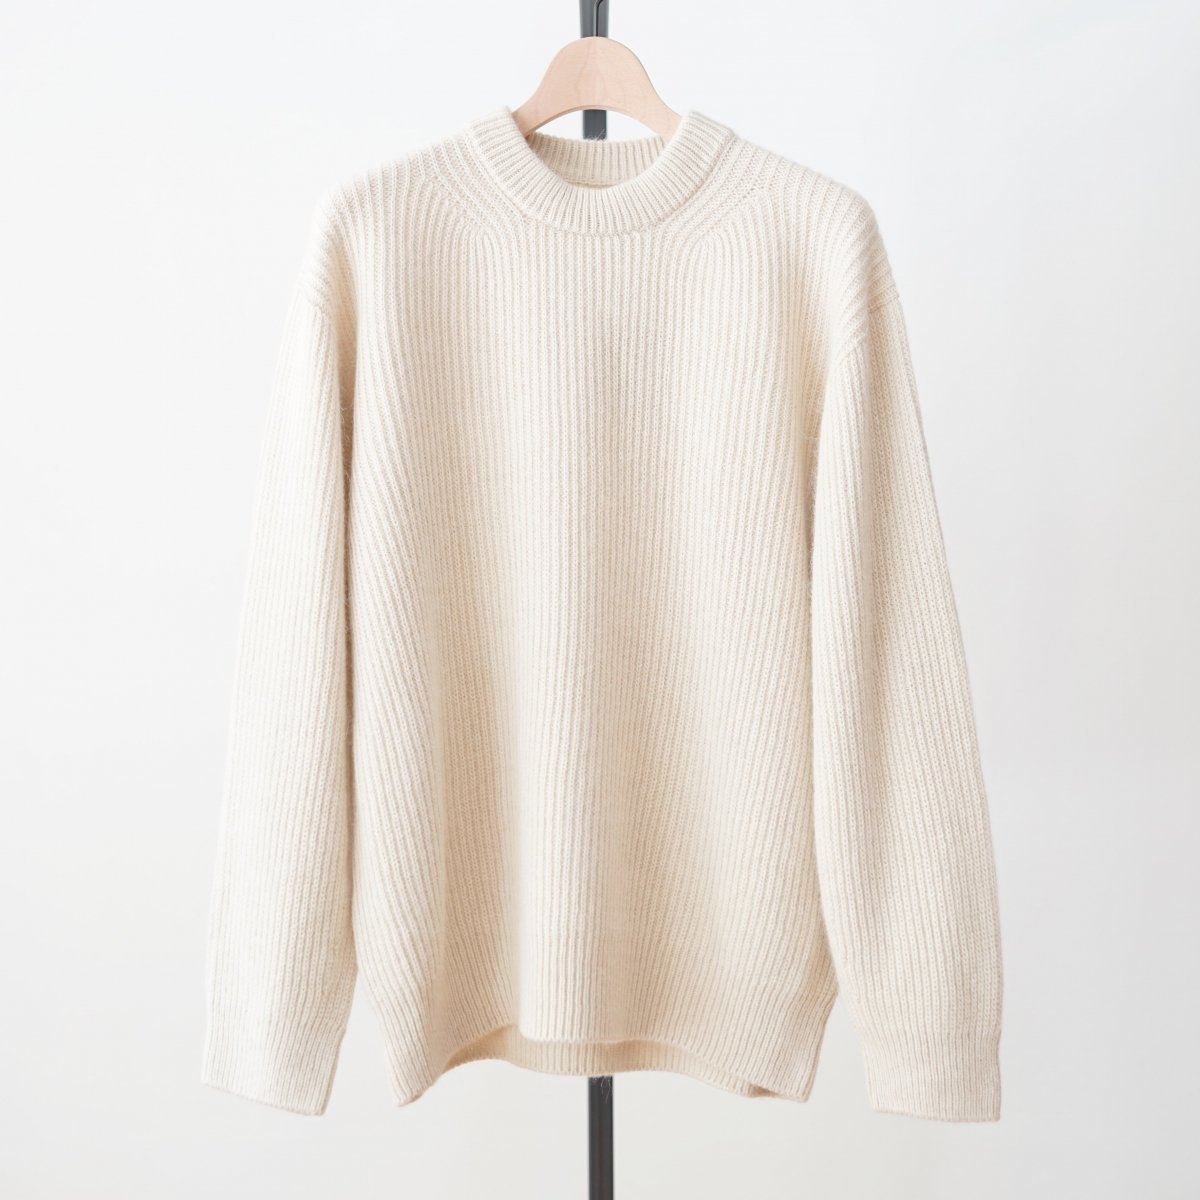 【unfil アンフィル】ROYAL BABY ALPACA SWEATER - OYSTER WHITE